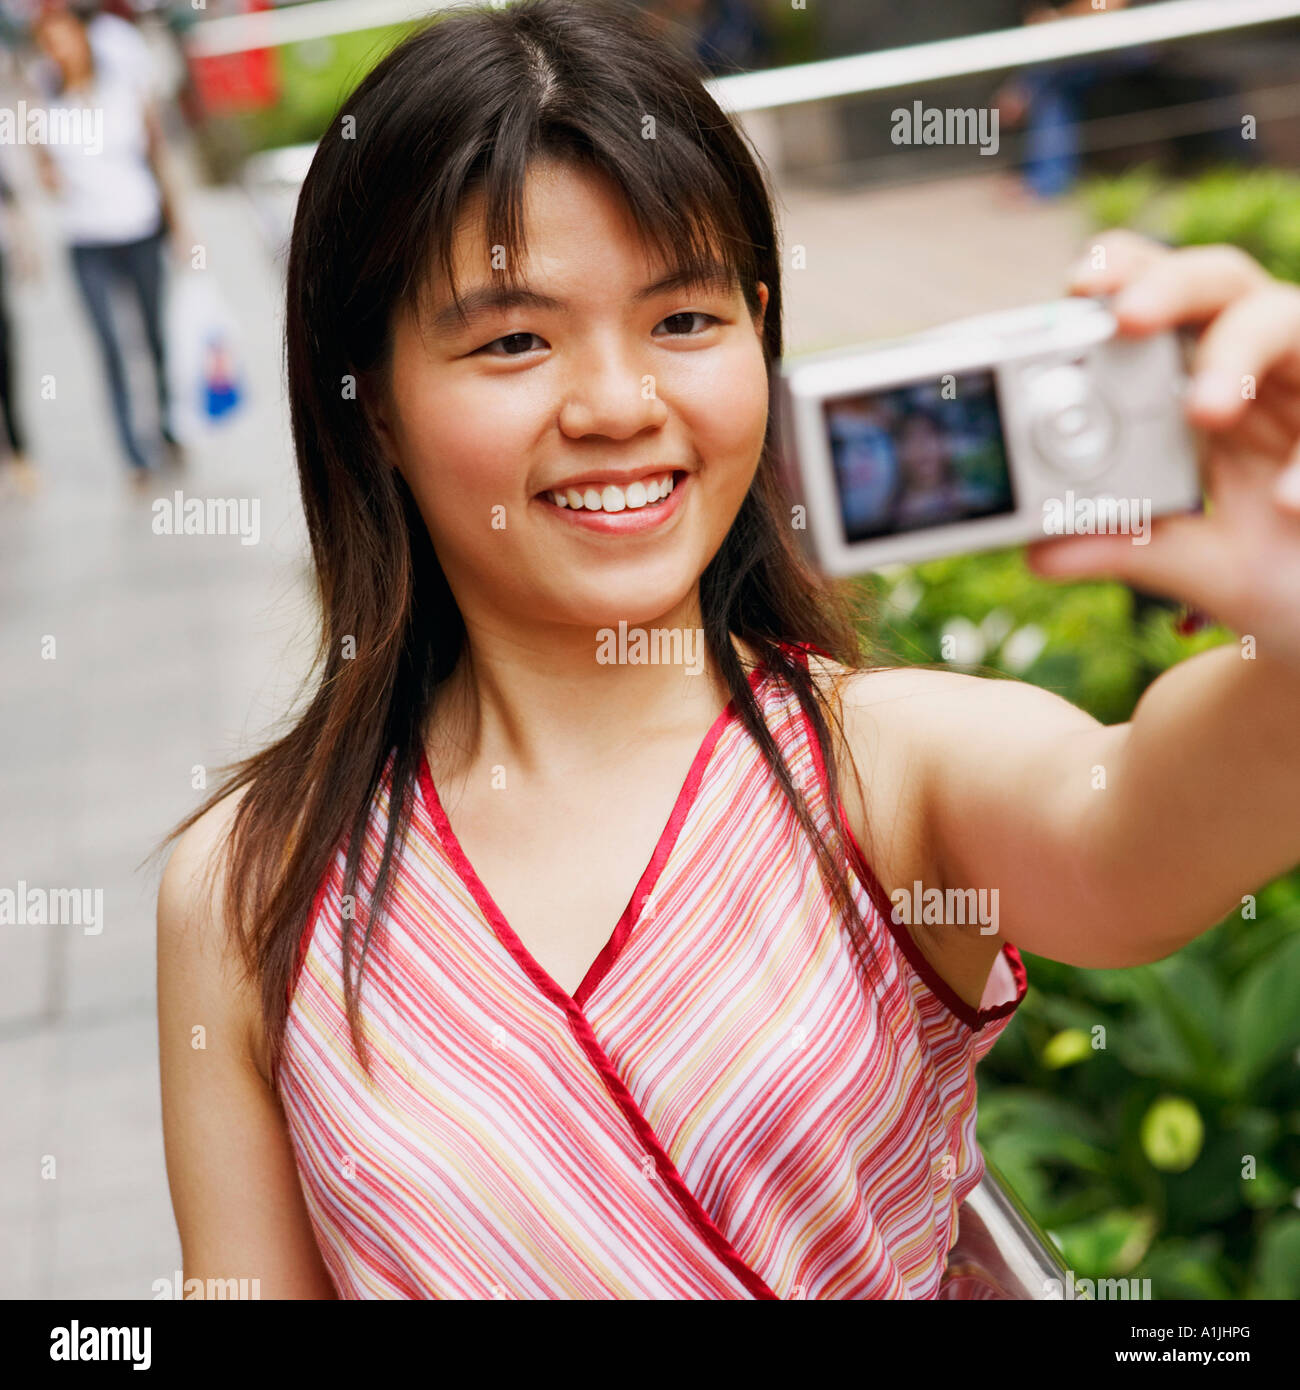 Close-up of a young woman taking a picture of herself - Stock Image